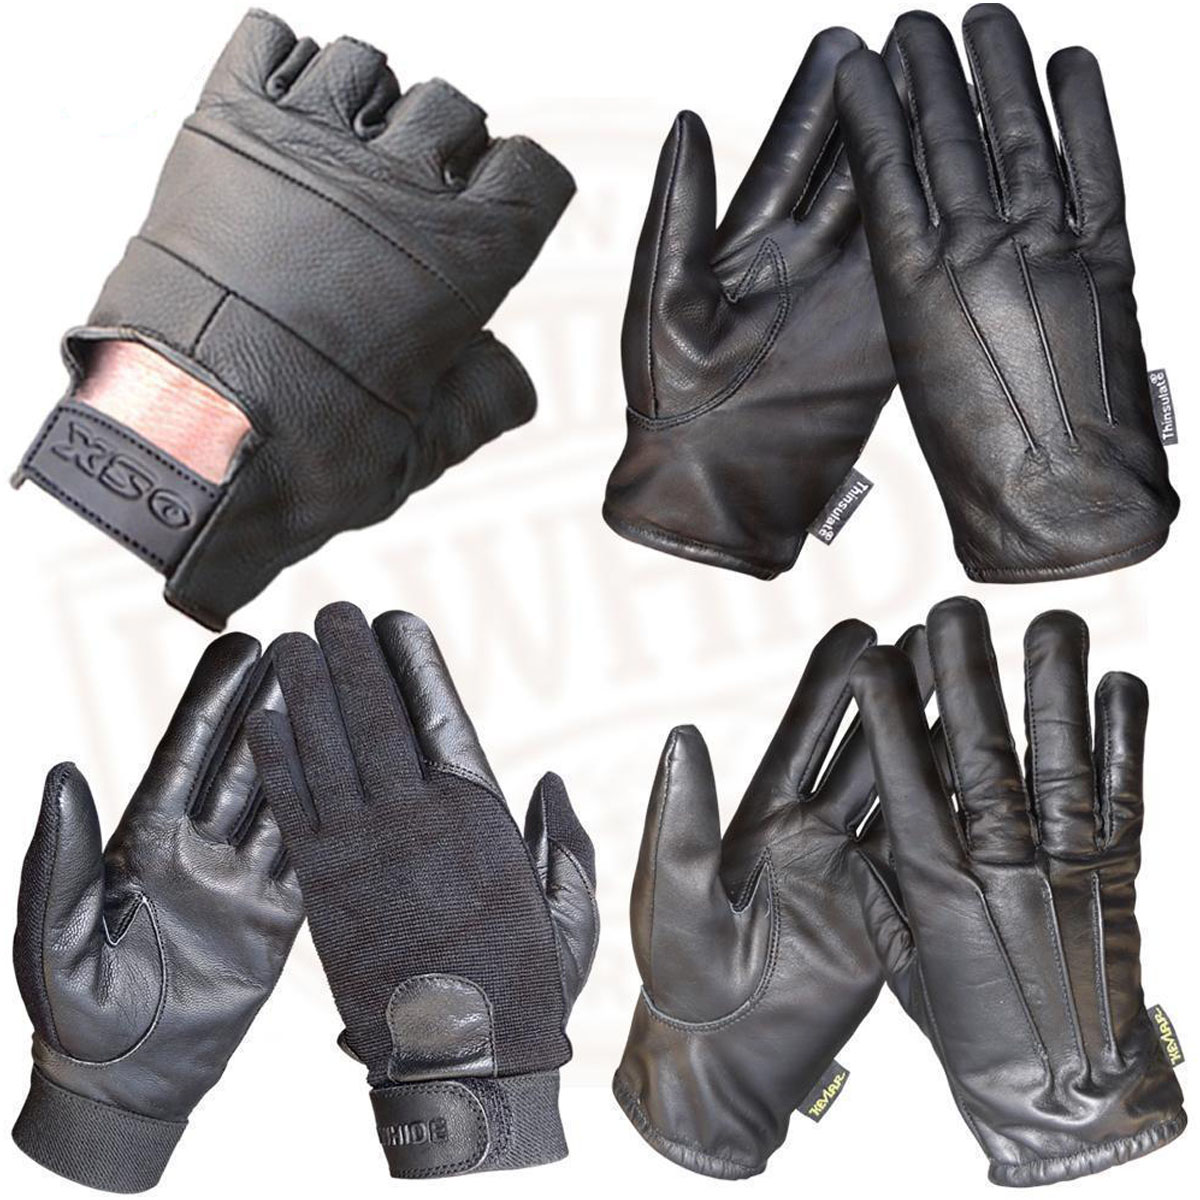 Driving gloves yahoo answers - Availability In Stock